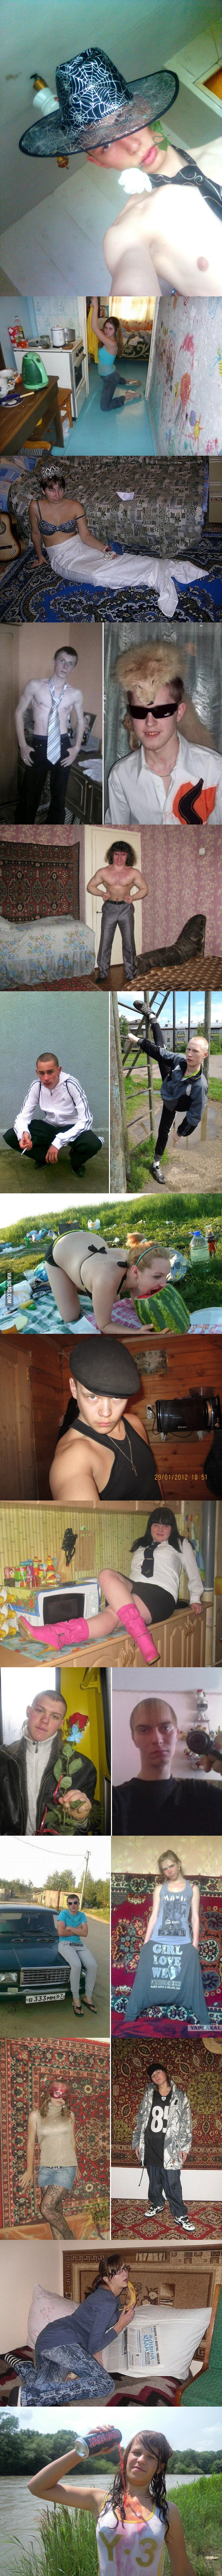 19 Pictures from Russian Dating Sites